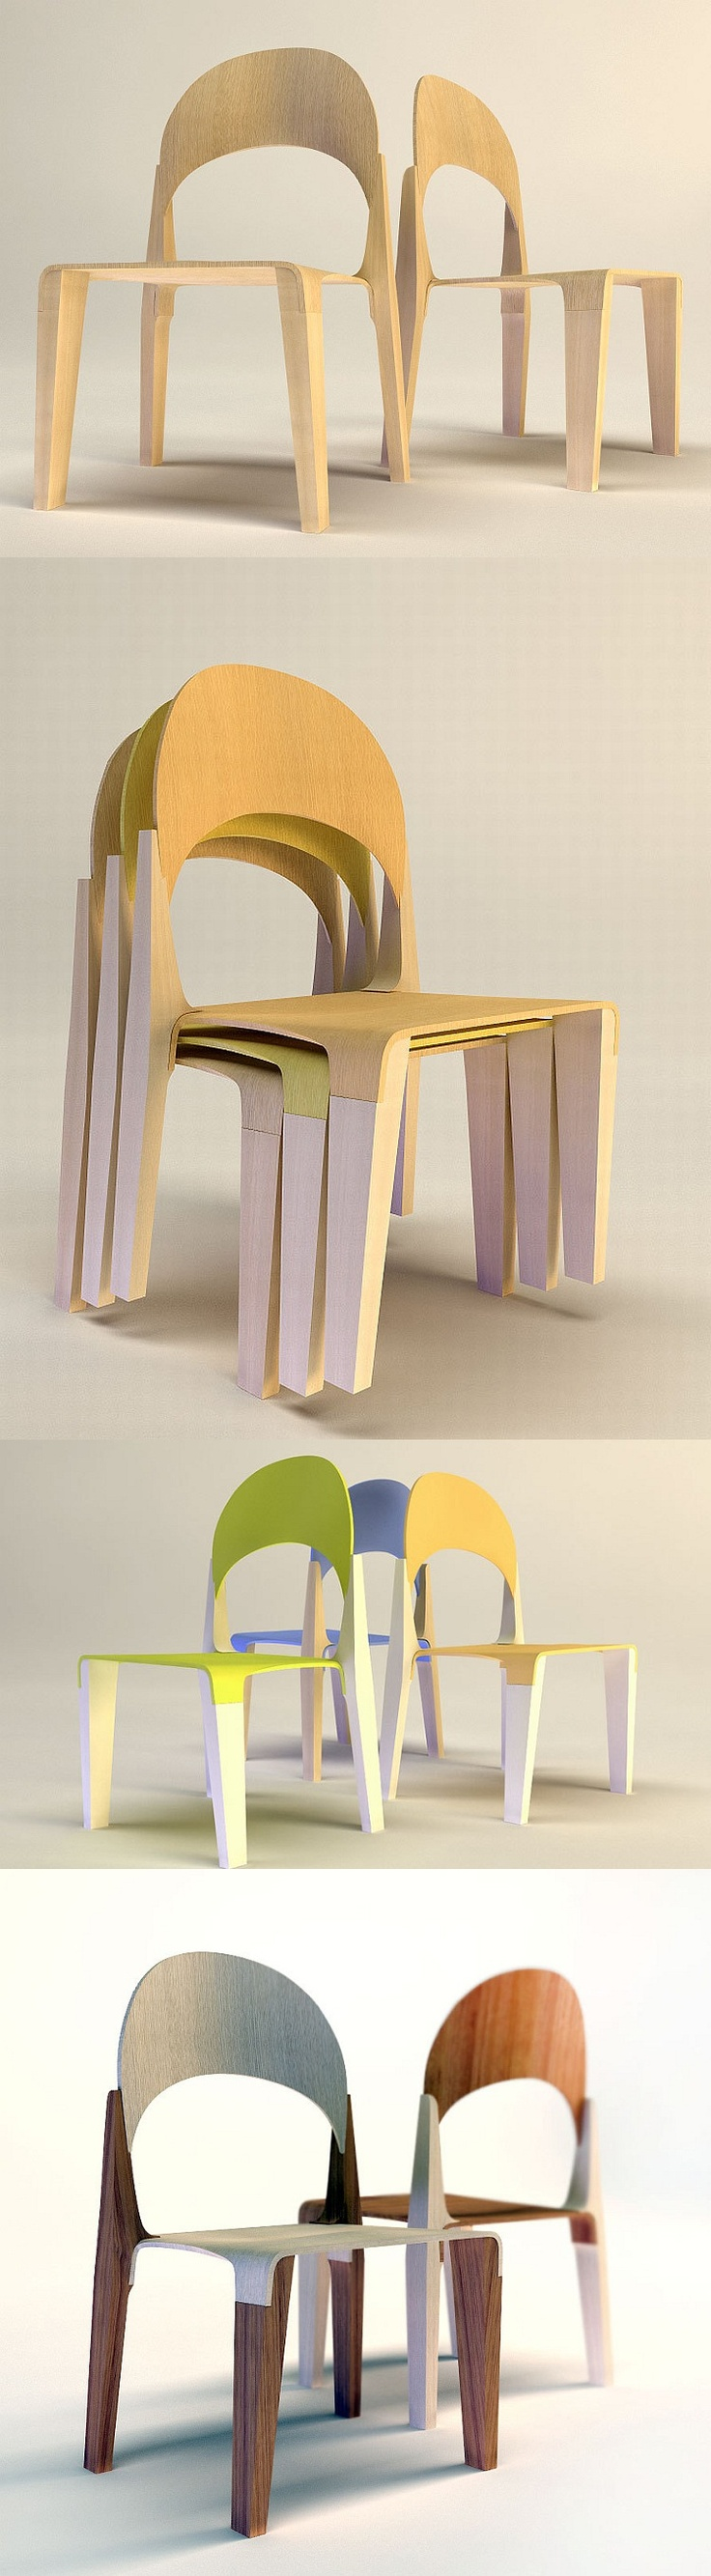 36 best Chair images on Pinterest